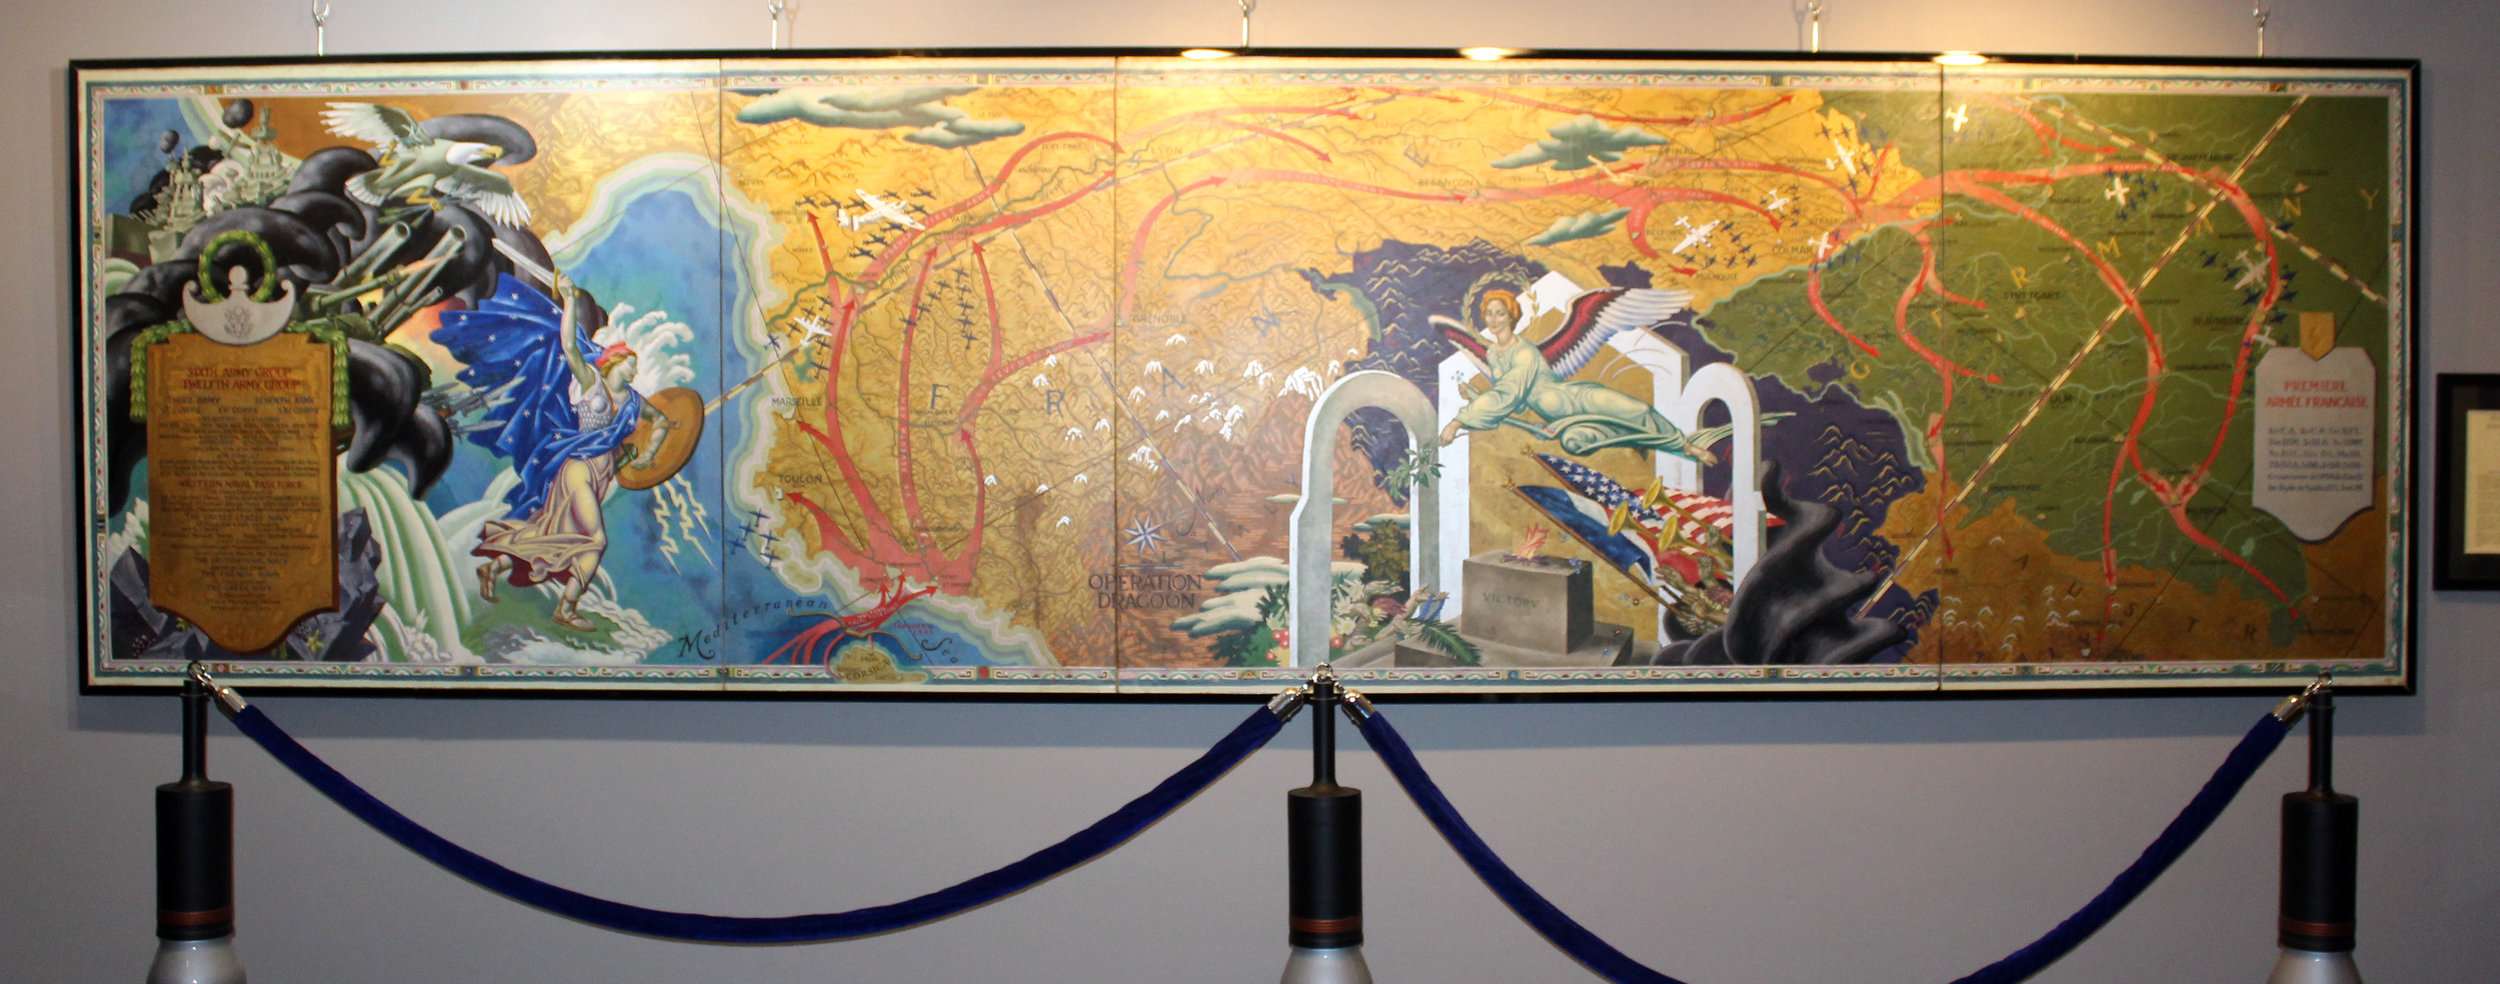 A 15' x 60' mural titled 'Operation Dragoon' by American master Eugene Savage (artist of murals in State Fair of Texas Hall of State). This is one of many military-themed art pieces on display.